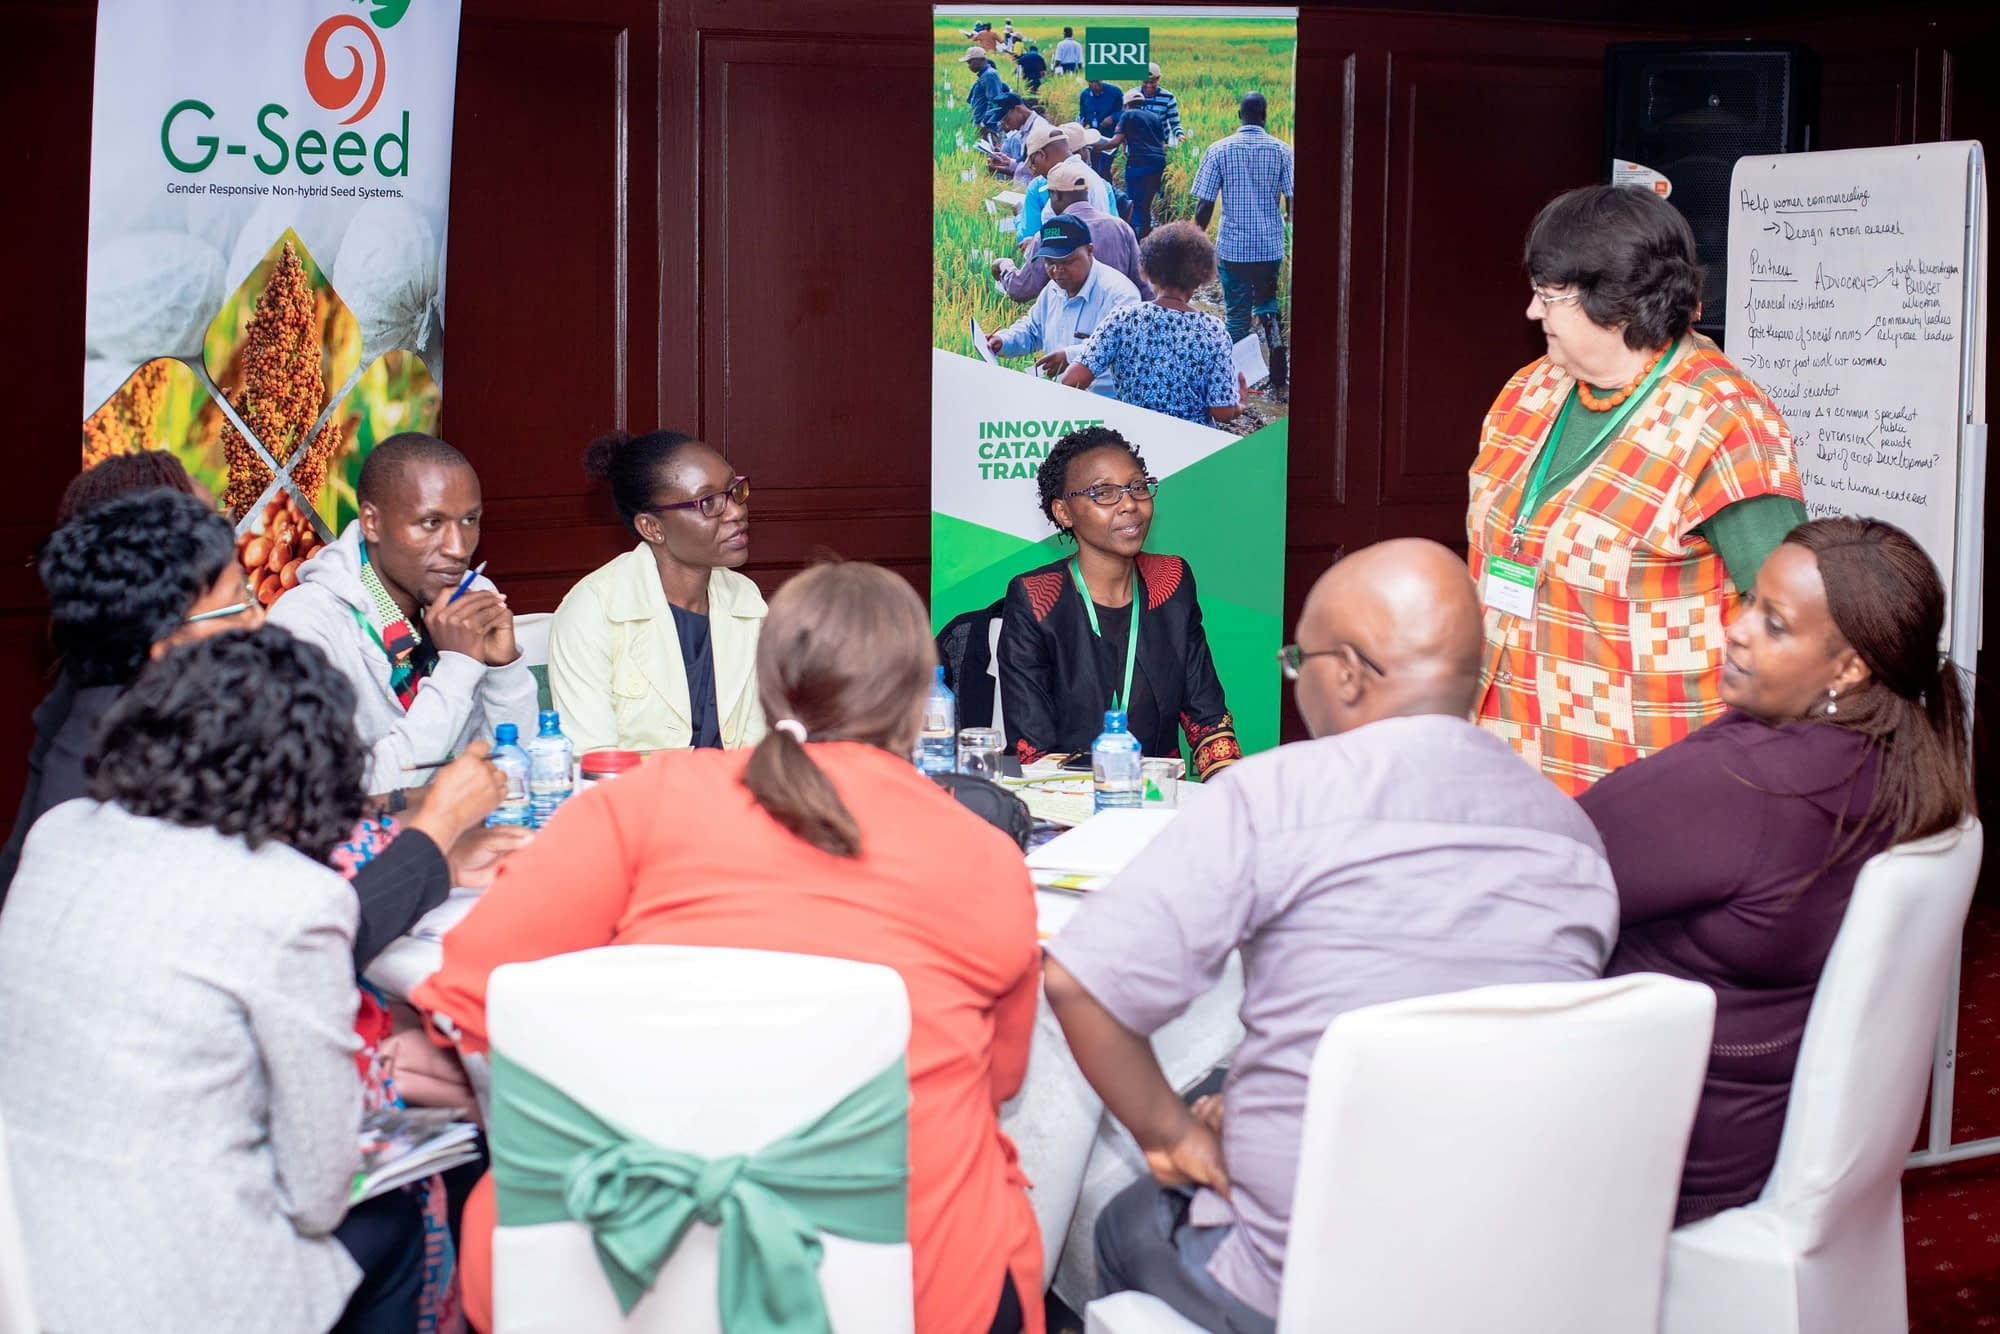 """Some of the participants at the """"Gender dynamics in seed systems in sub-Saharan Africa"""" workshop held on December 2, 2019, in Nairobi, Kenya. (Photo: Kipenz Films/CIMMYT)"""